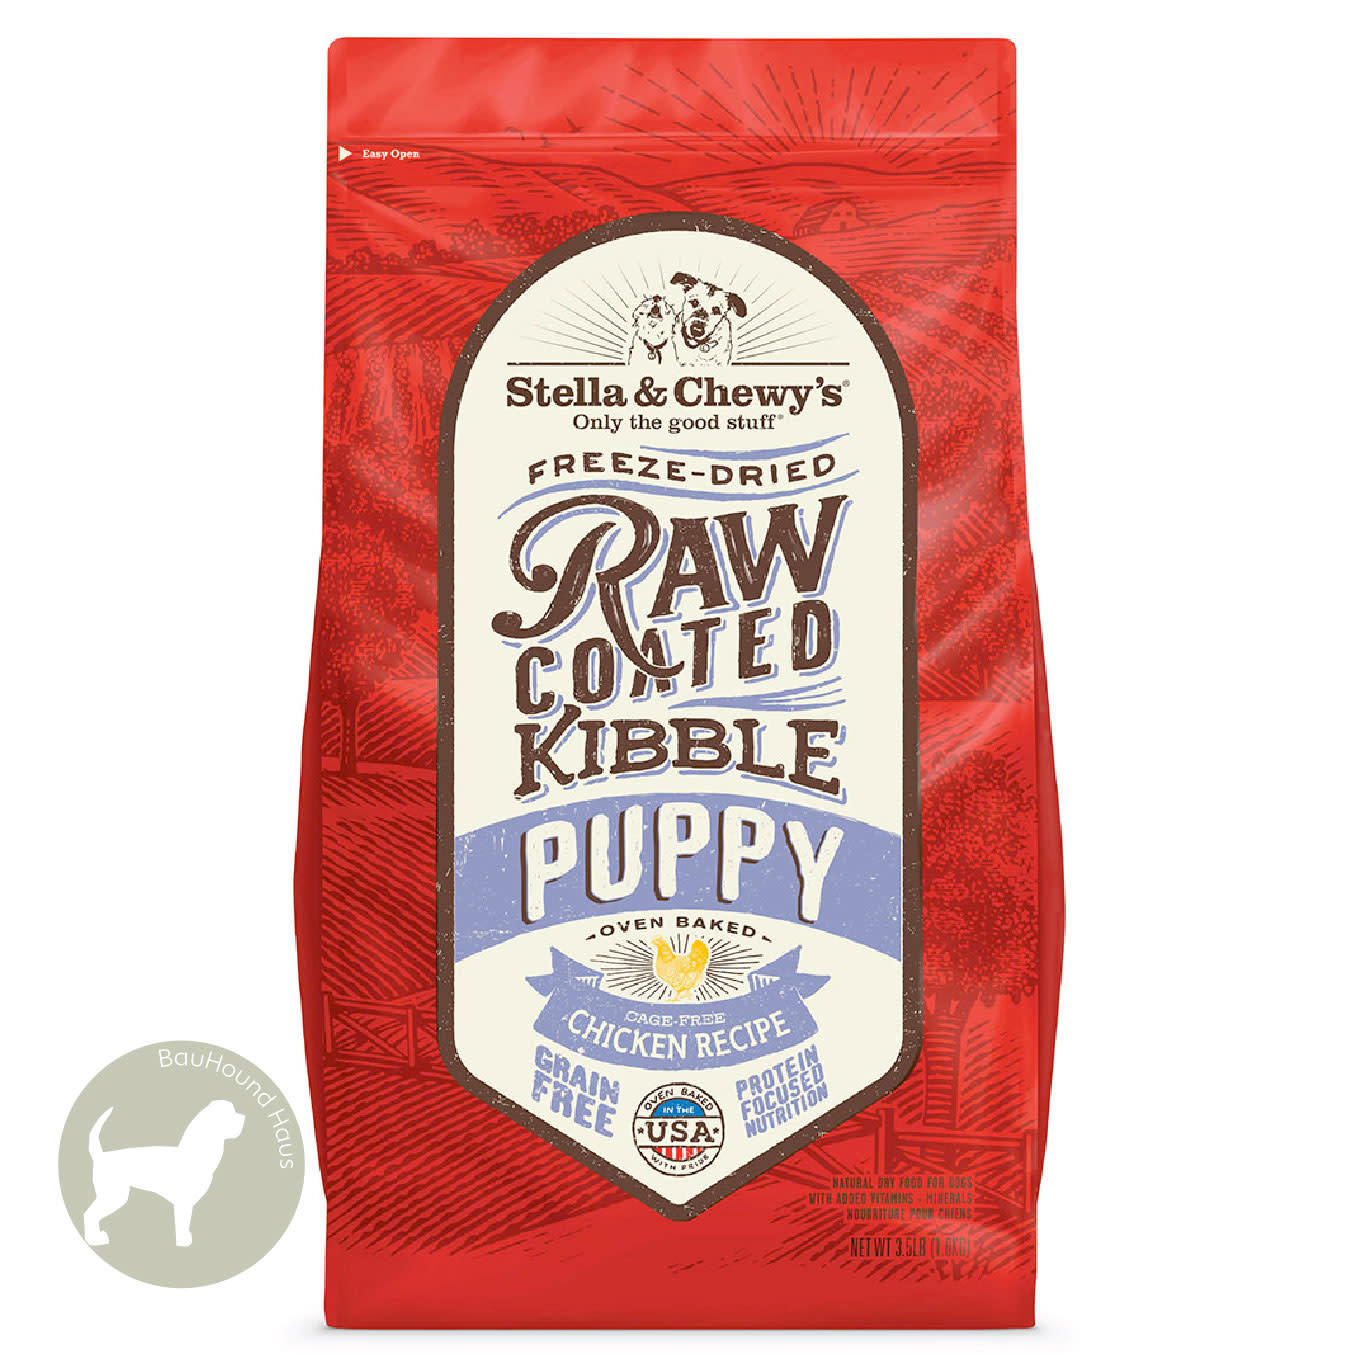 Stella & Chewy's Stella & Chewy's Freeze Dried Raw Coated Kibble PUPPY Chicken Recipe 10lb